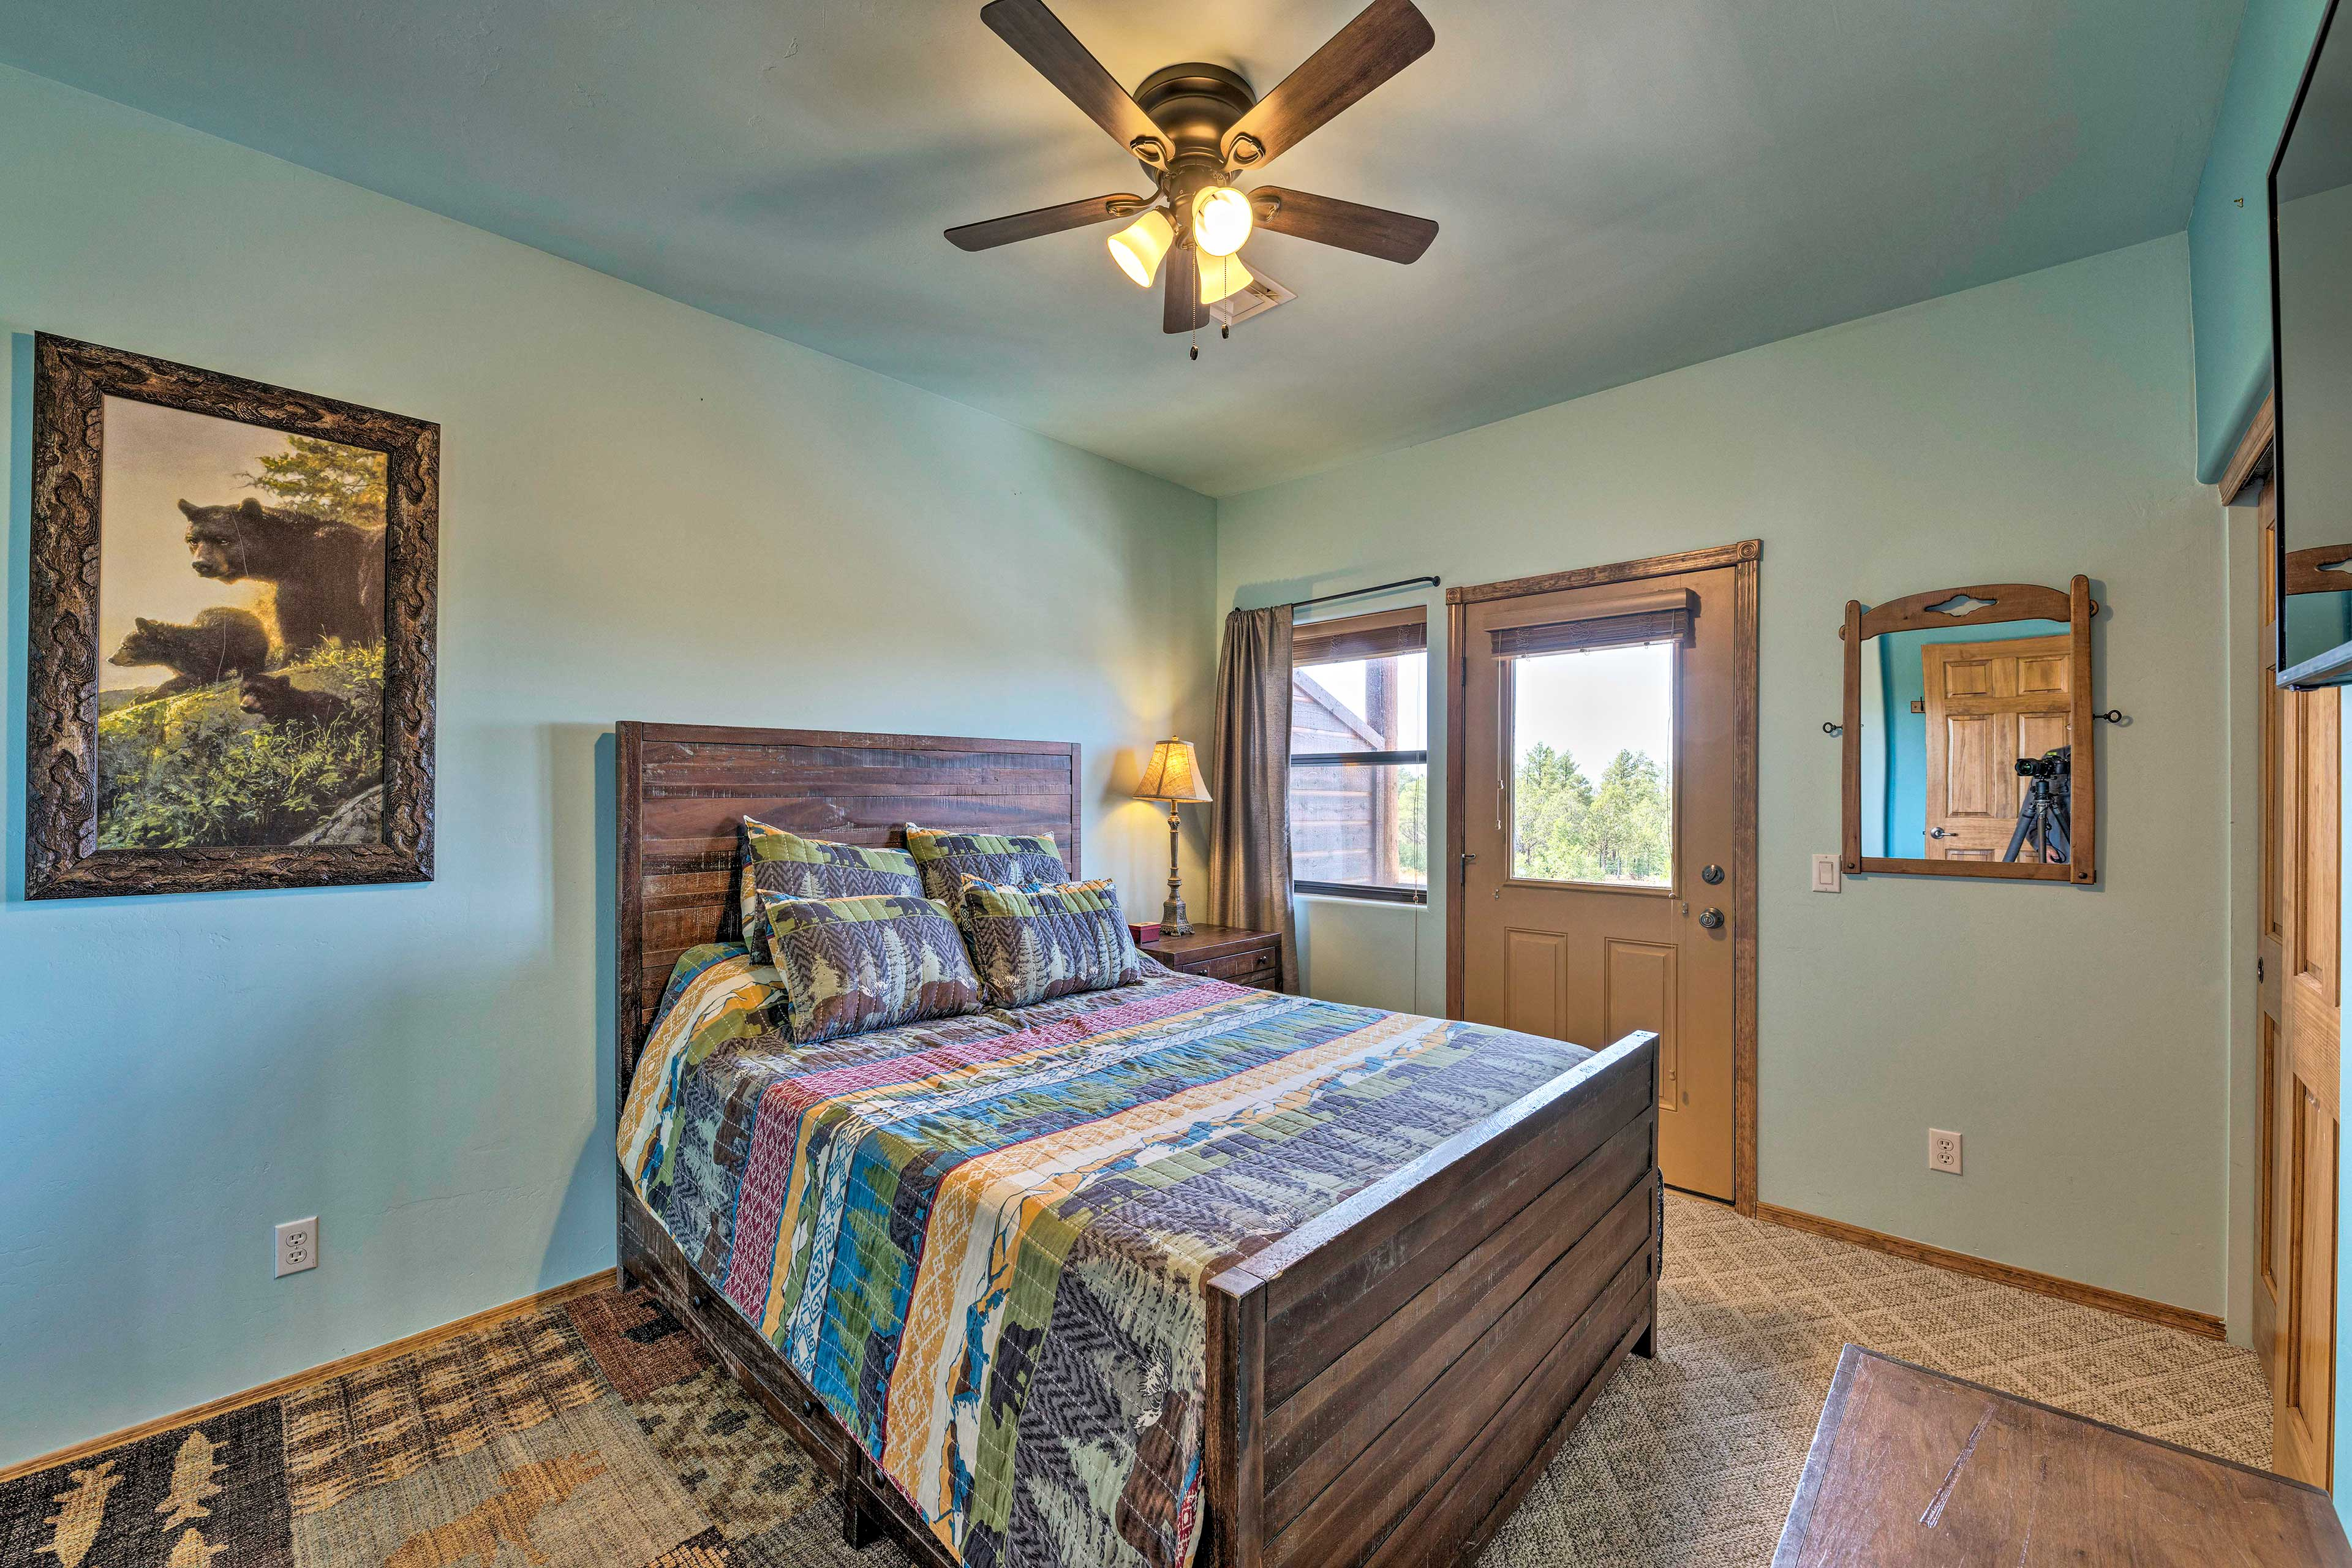 The master bedroom features a queen bed and a rollaway for extra sleep space.